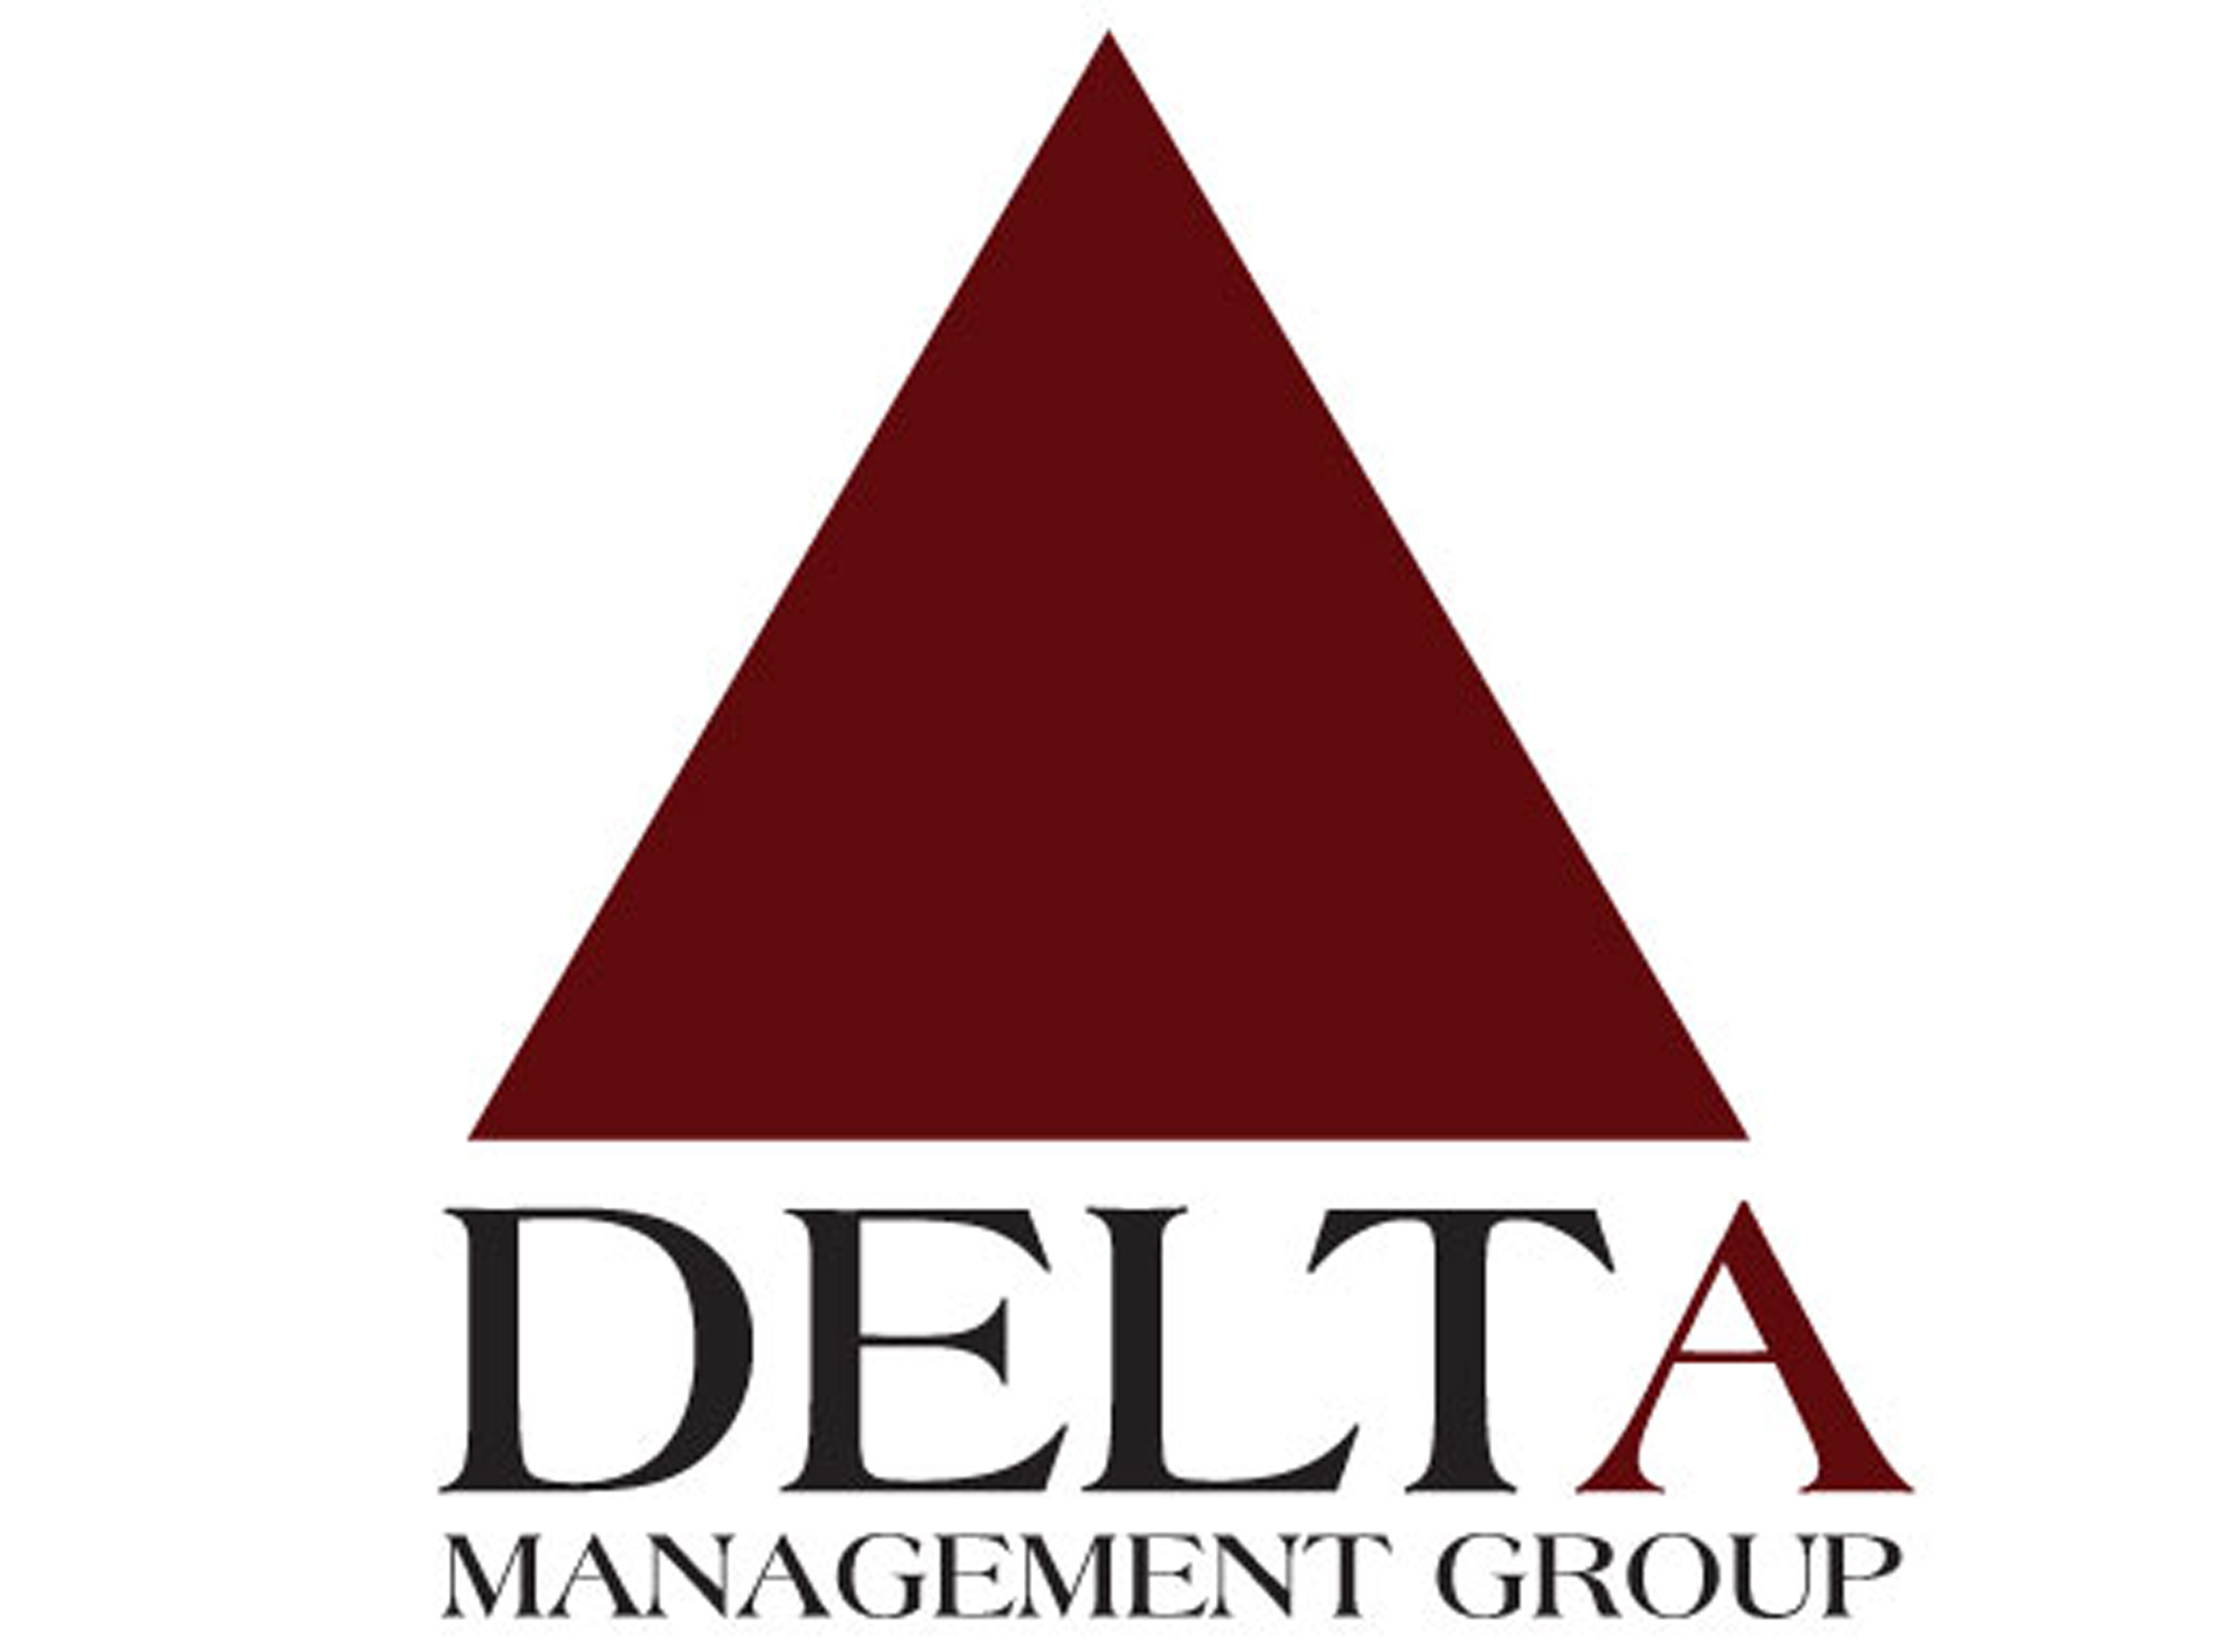 Delta Management Group